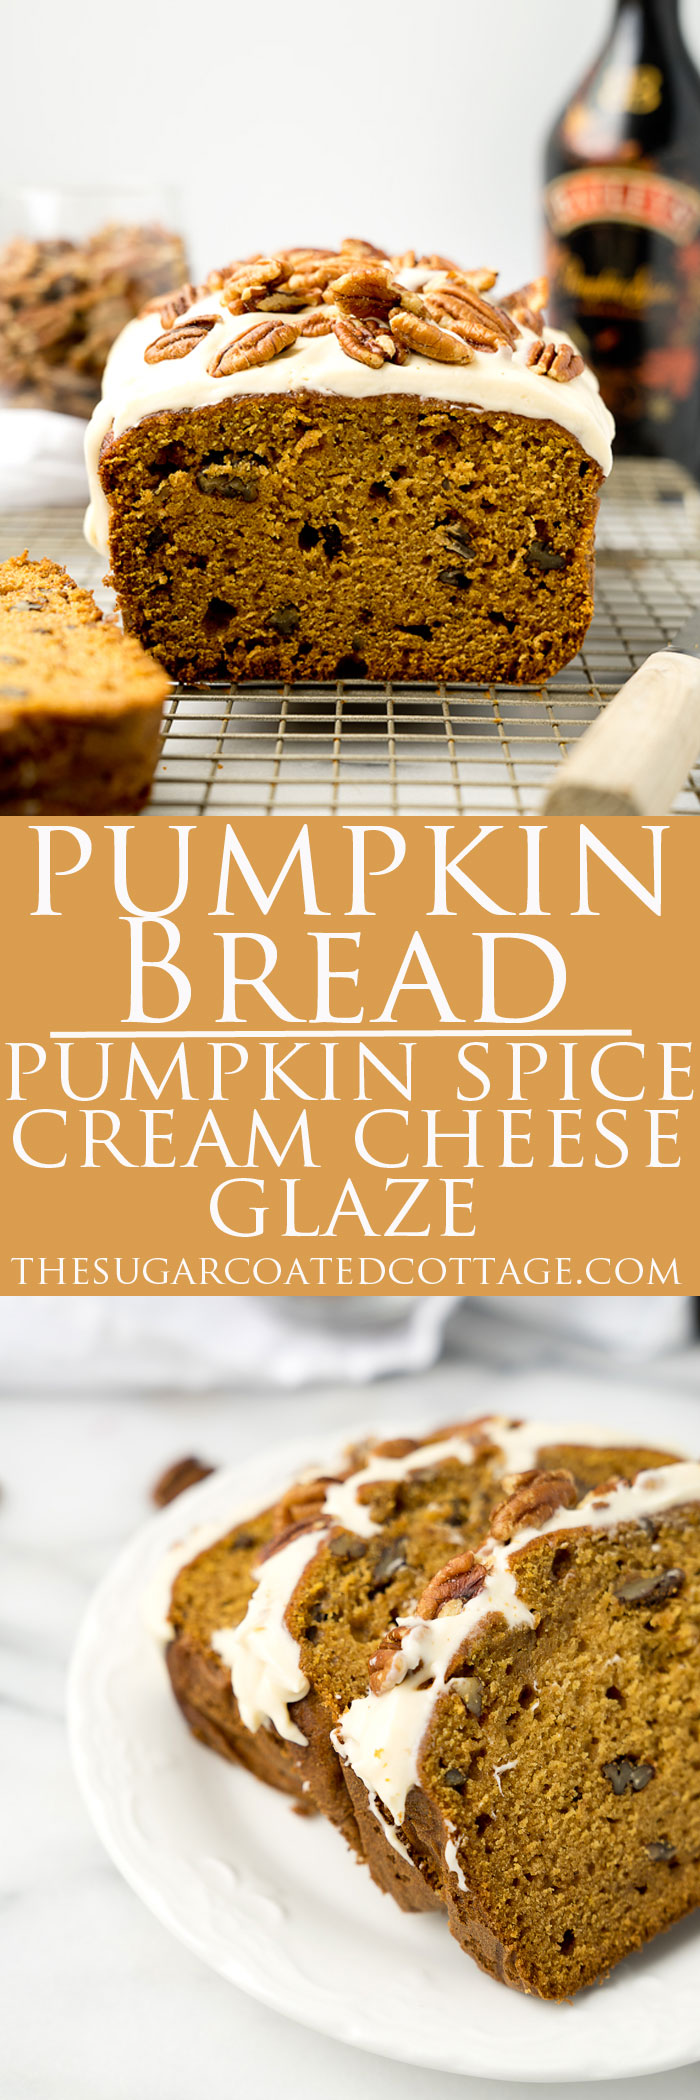 Pecan Pumpkin Bread with Pumpkin Spice Cream Cheese Glaze. The best pumpkin bread recipe and glaze you'll ever eat. | thesugarcoatedcottage.com